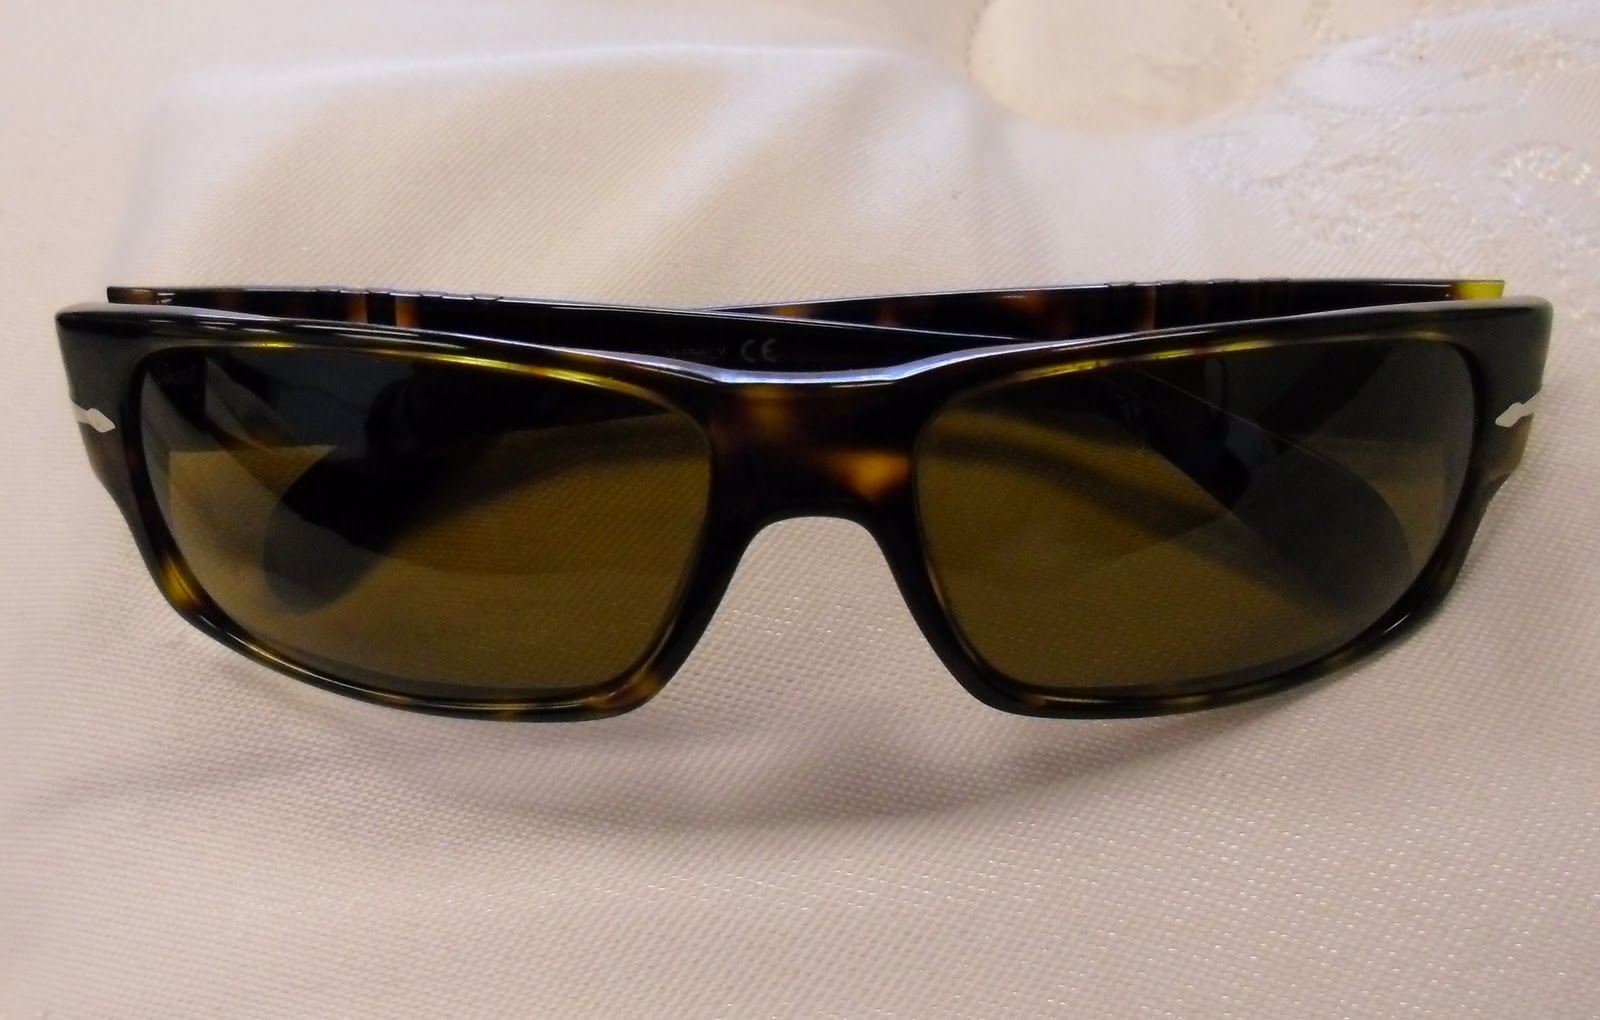 6cf37aeff1bcc It has been a while since I last wrote about sunglasses